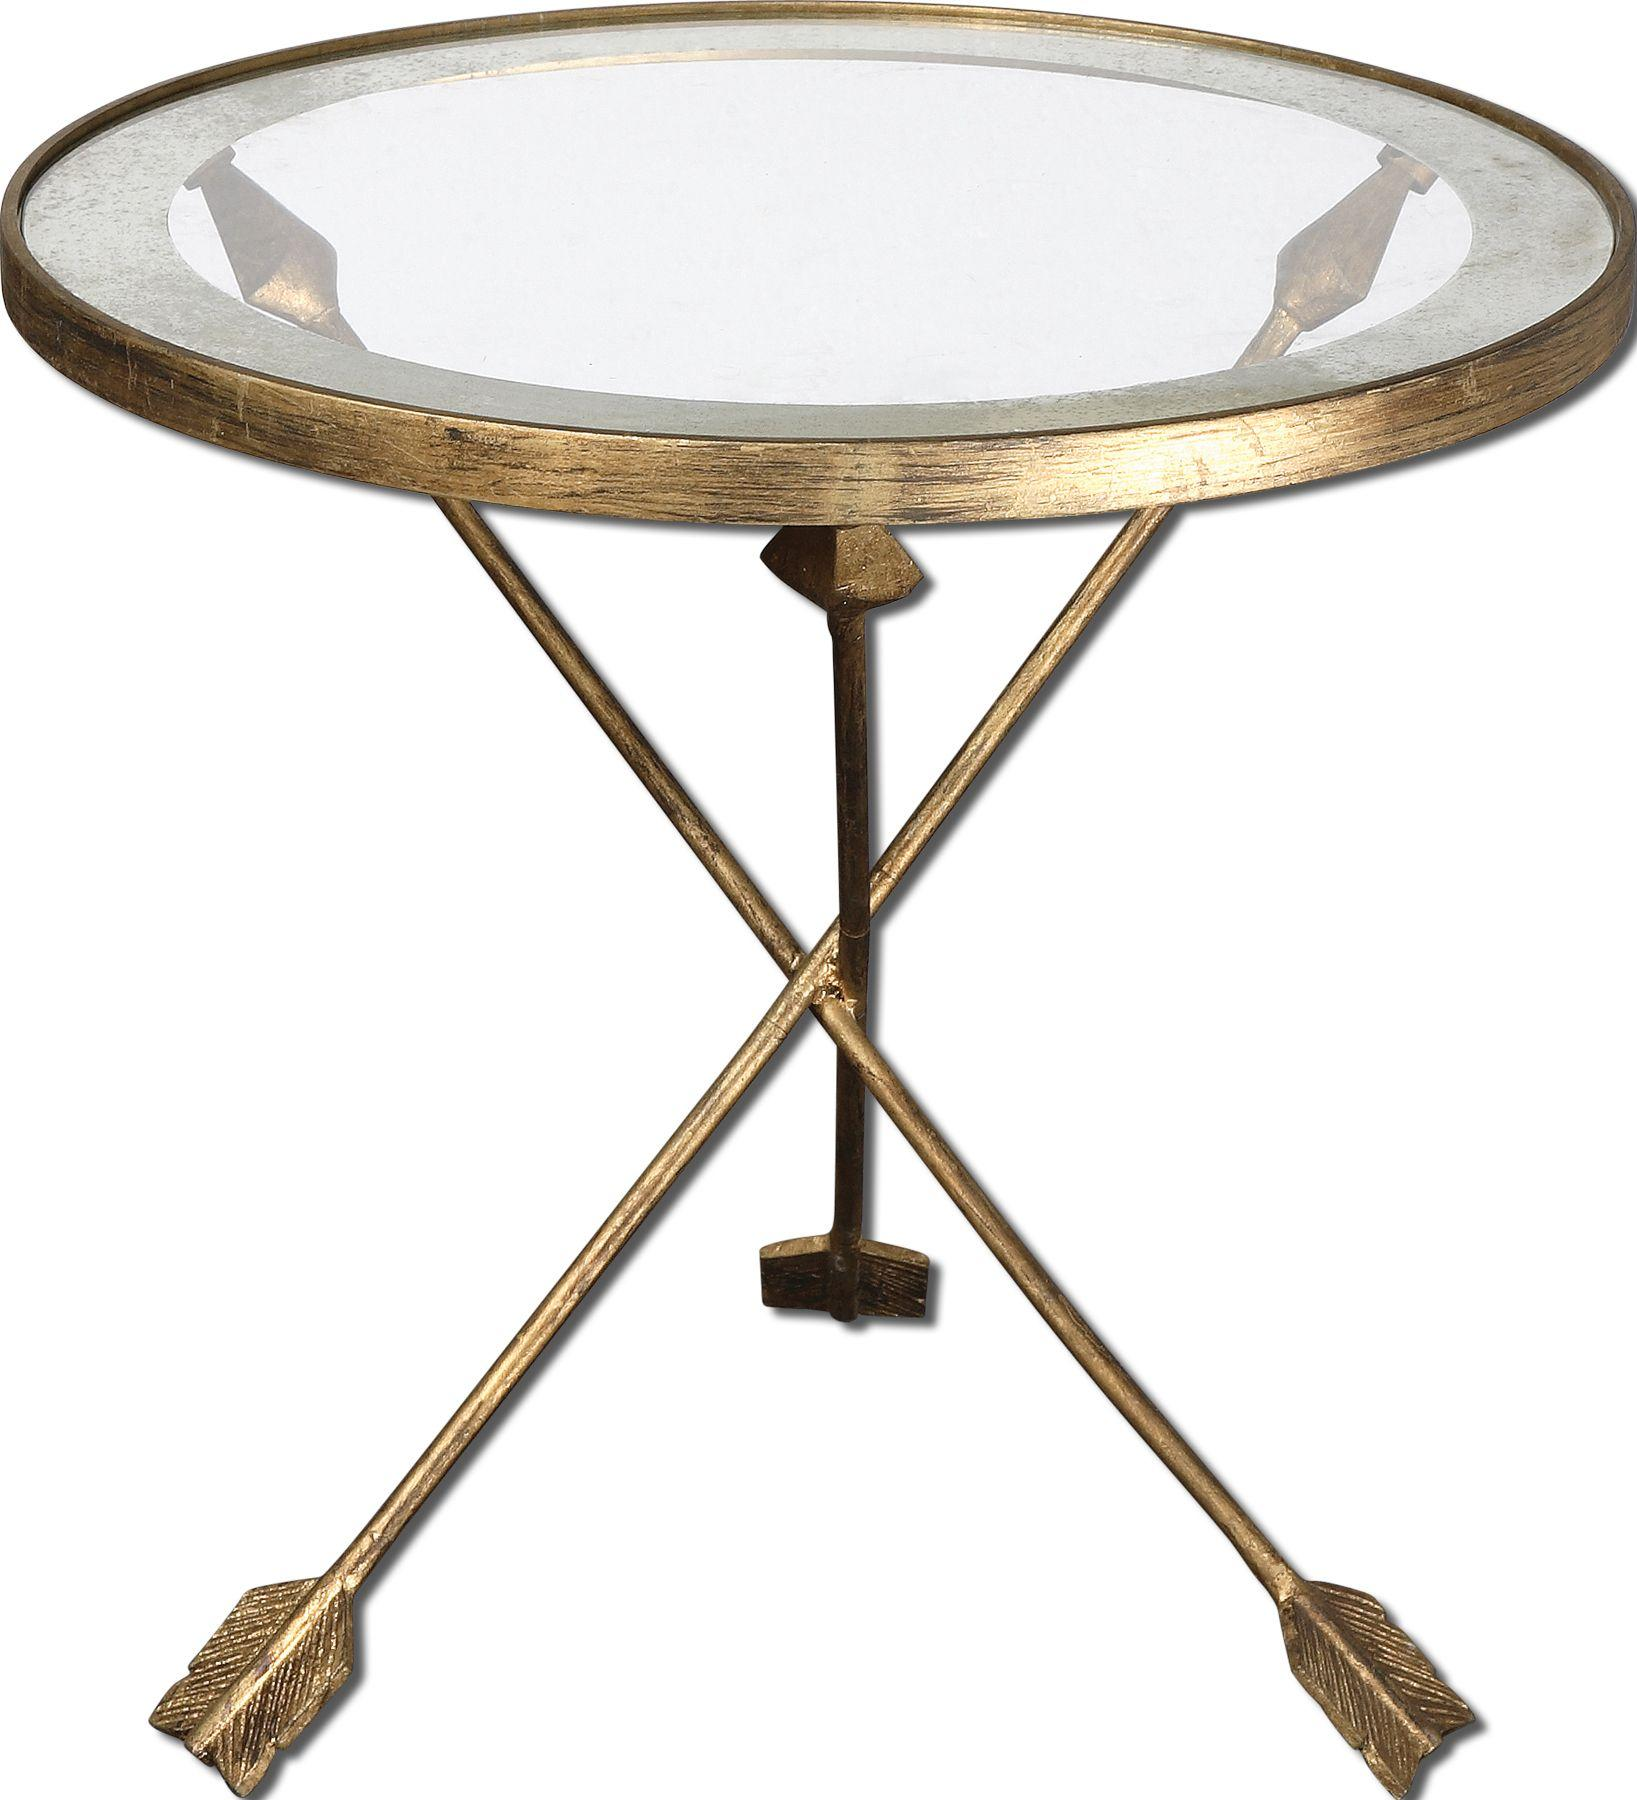 uttermost accent furniture occasional tables aero products color round table glass top wood and end cooler for drinks wicker set console behind sofa inch tablecloth square dining